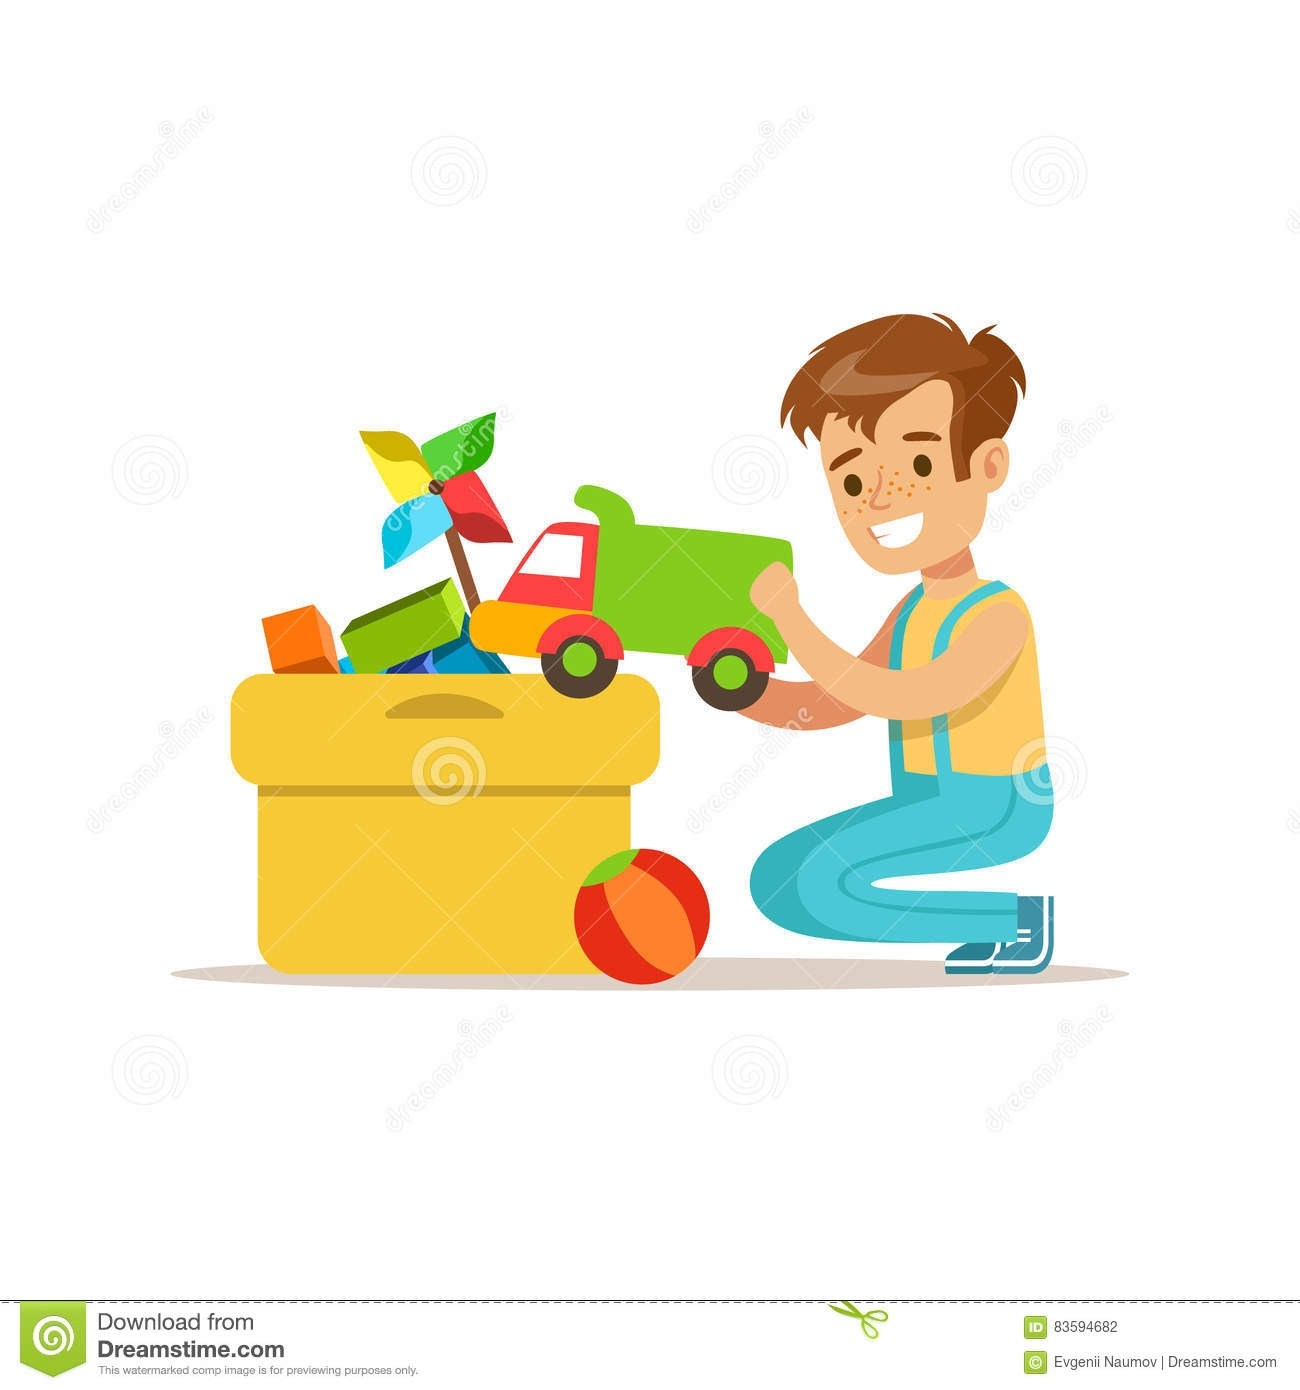 Boy clean up toys clipart png royalty free stock Clean up toys clipart Elegant Toy clipart cleanup Pencil and in ... png royalty free stock